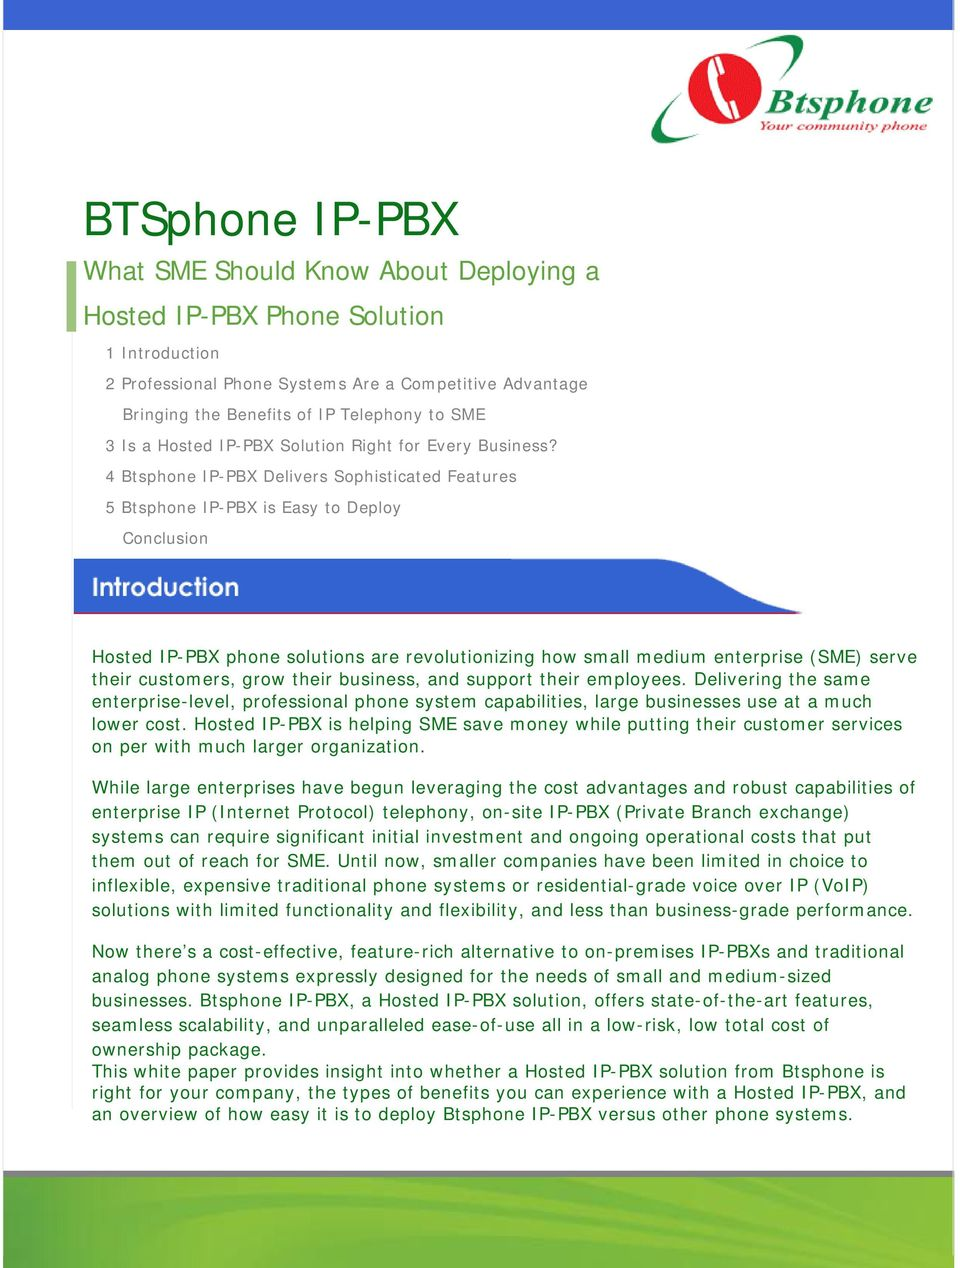 4 Btsphone IP-PBX Delivers Sophisticated Features 5 Btsphone IP-PBX is Easy to Deploy Conclusion Hosted IP-PBX phone solutions are revolutionizing how small medium enterprise (SME) serve their